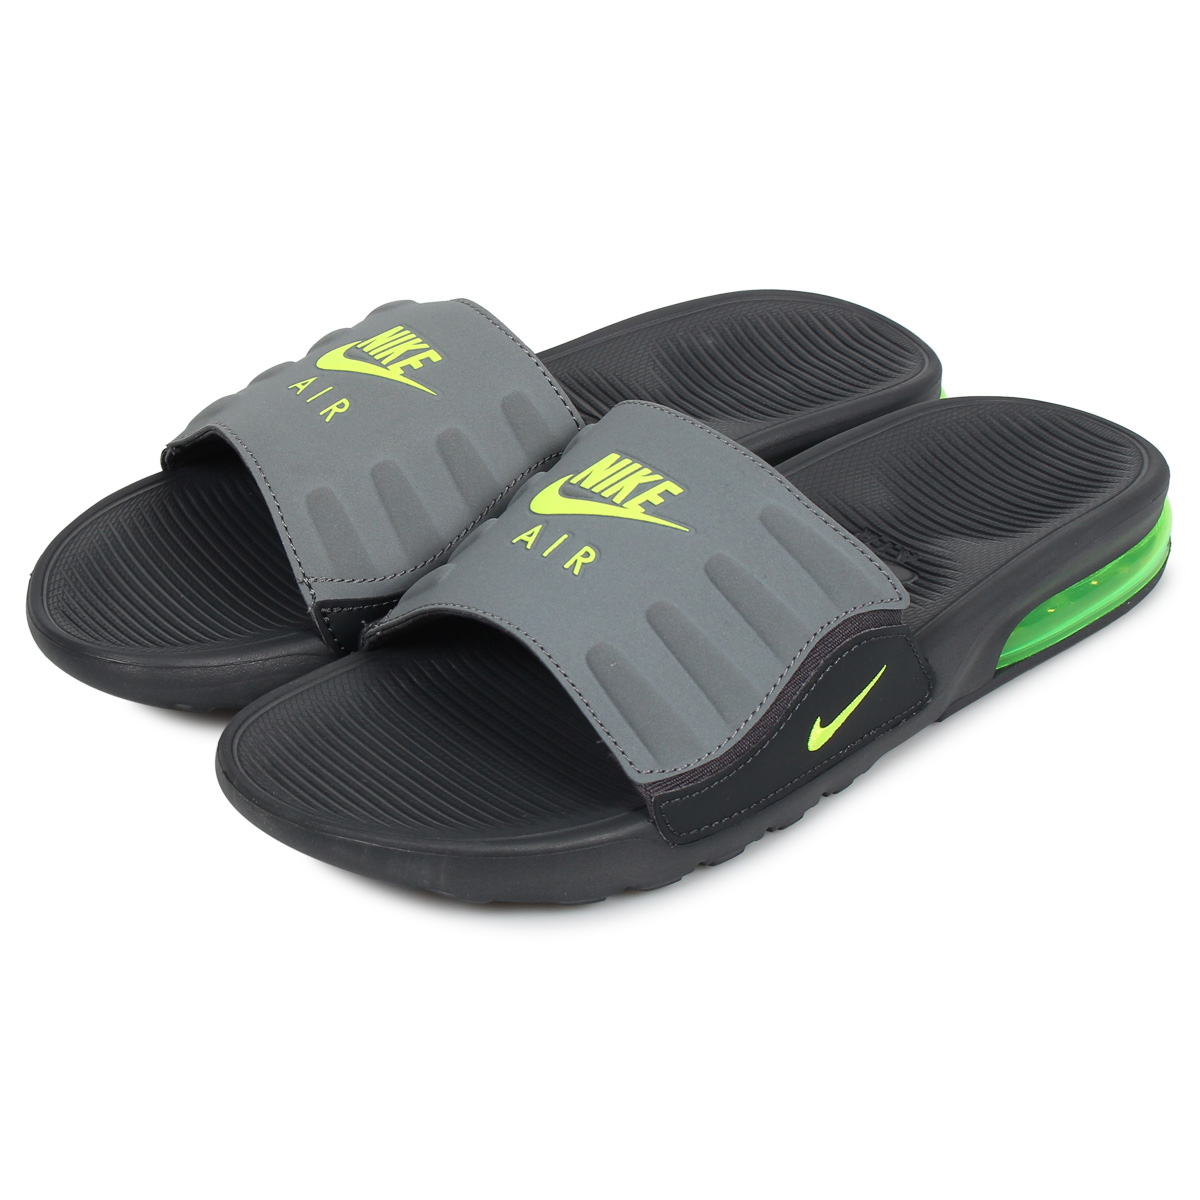 Nike NIKE Air Max sandals Camden slide shower sandals men gap Dis AIR MAX  CAMDEN SLIDE gray BQ4626-001